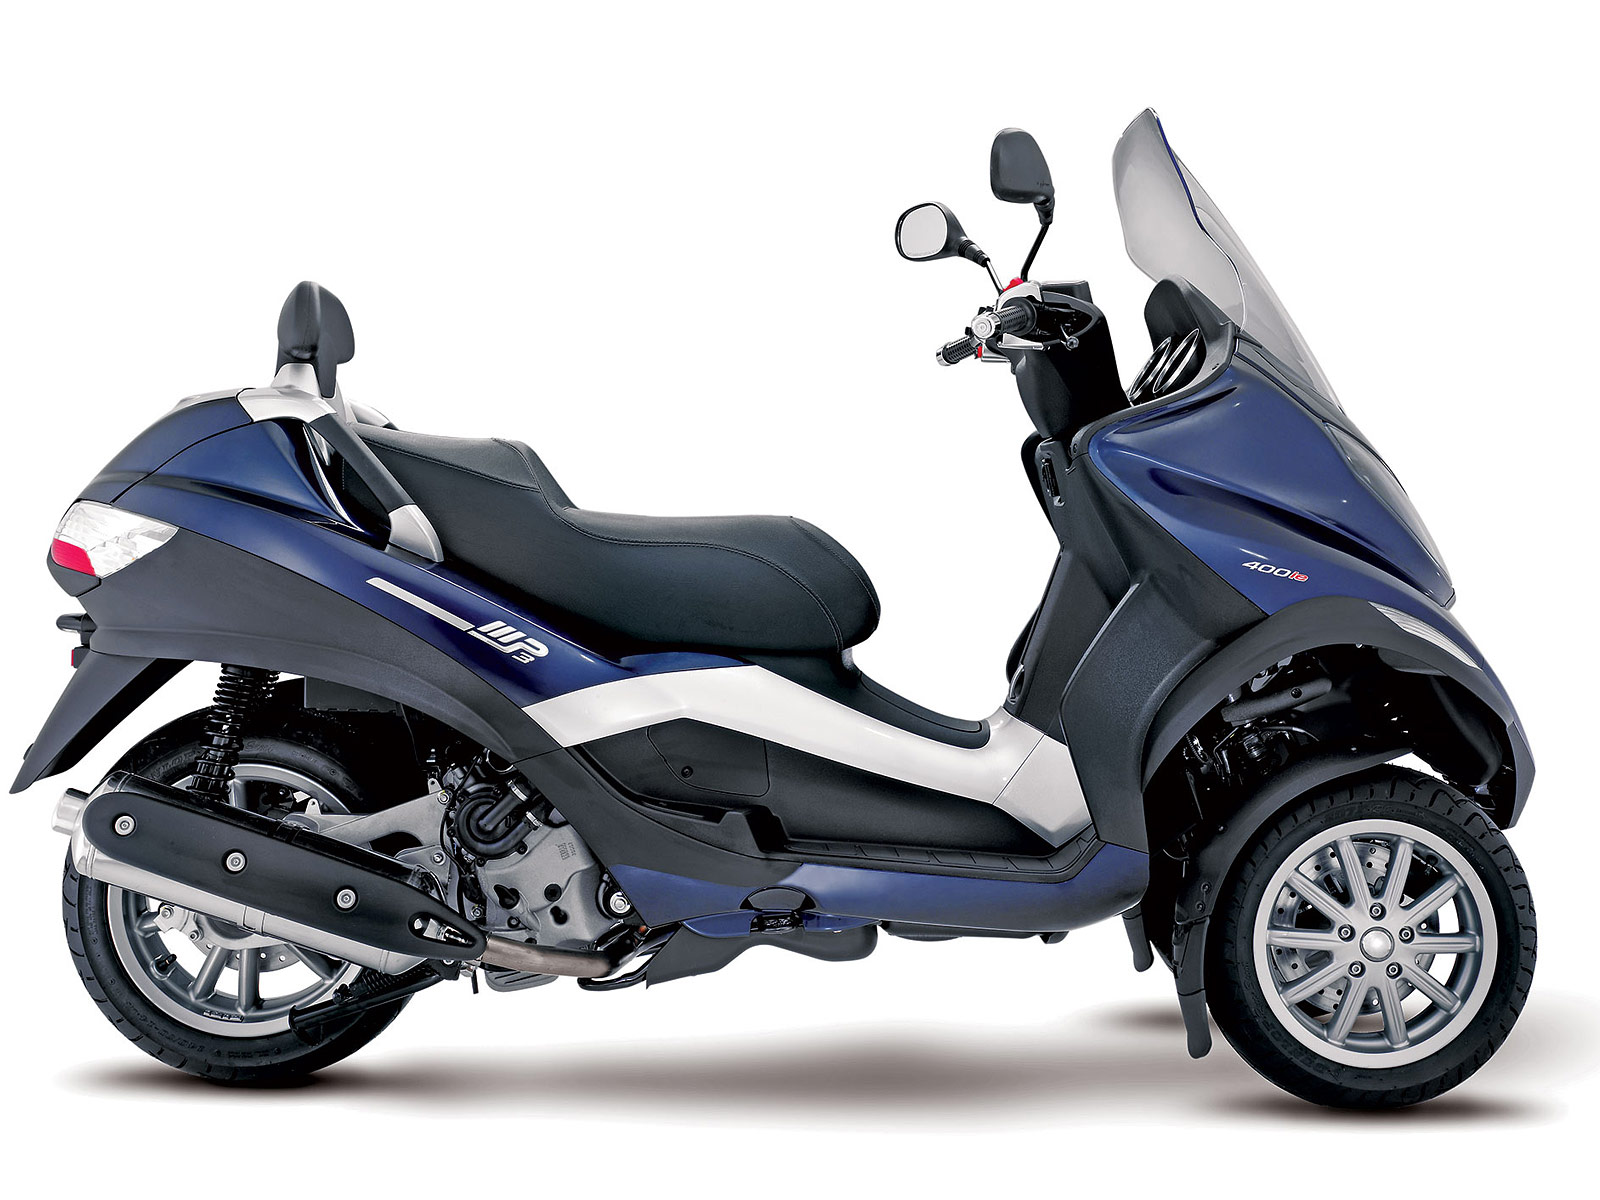 2013 piaggio mp3 400 scooter pictures review insurance information. Black Bedroom Furniture Sets. Home Design Ideas